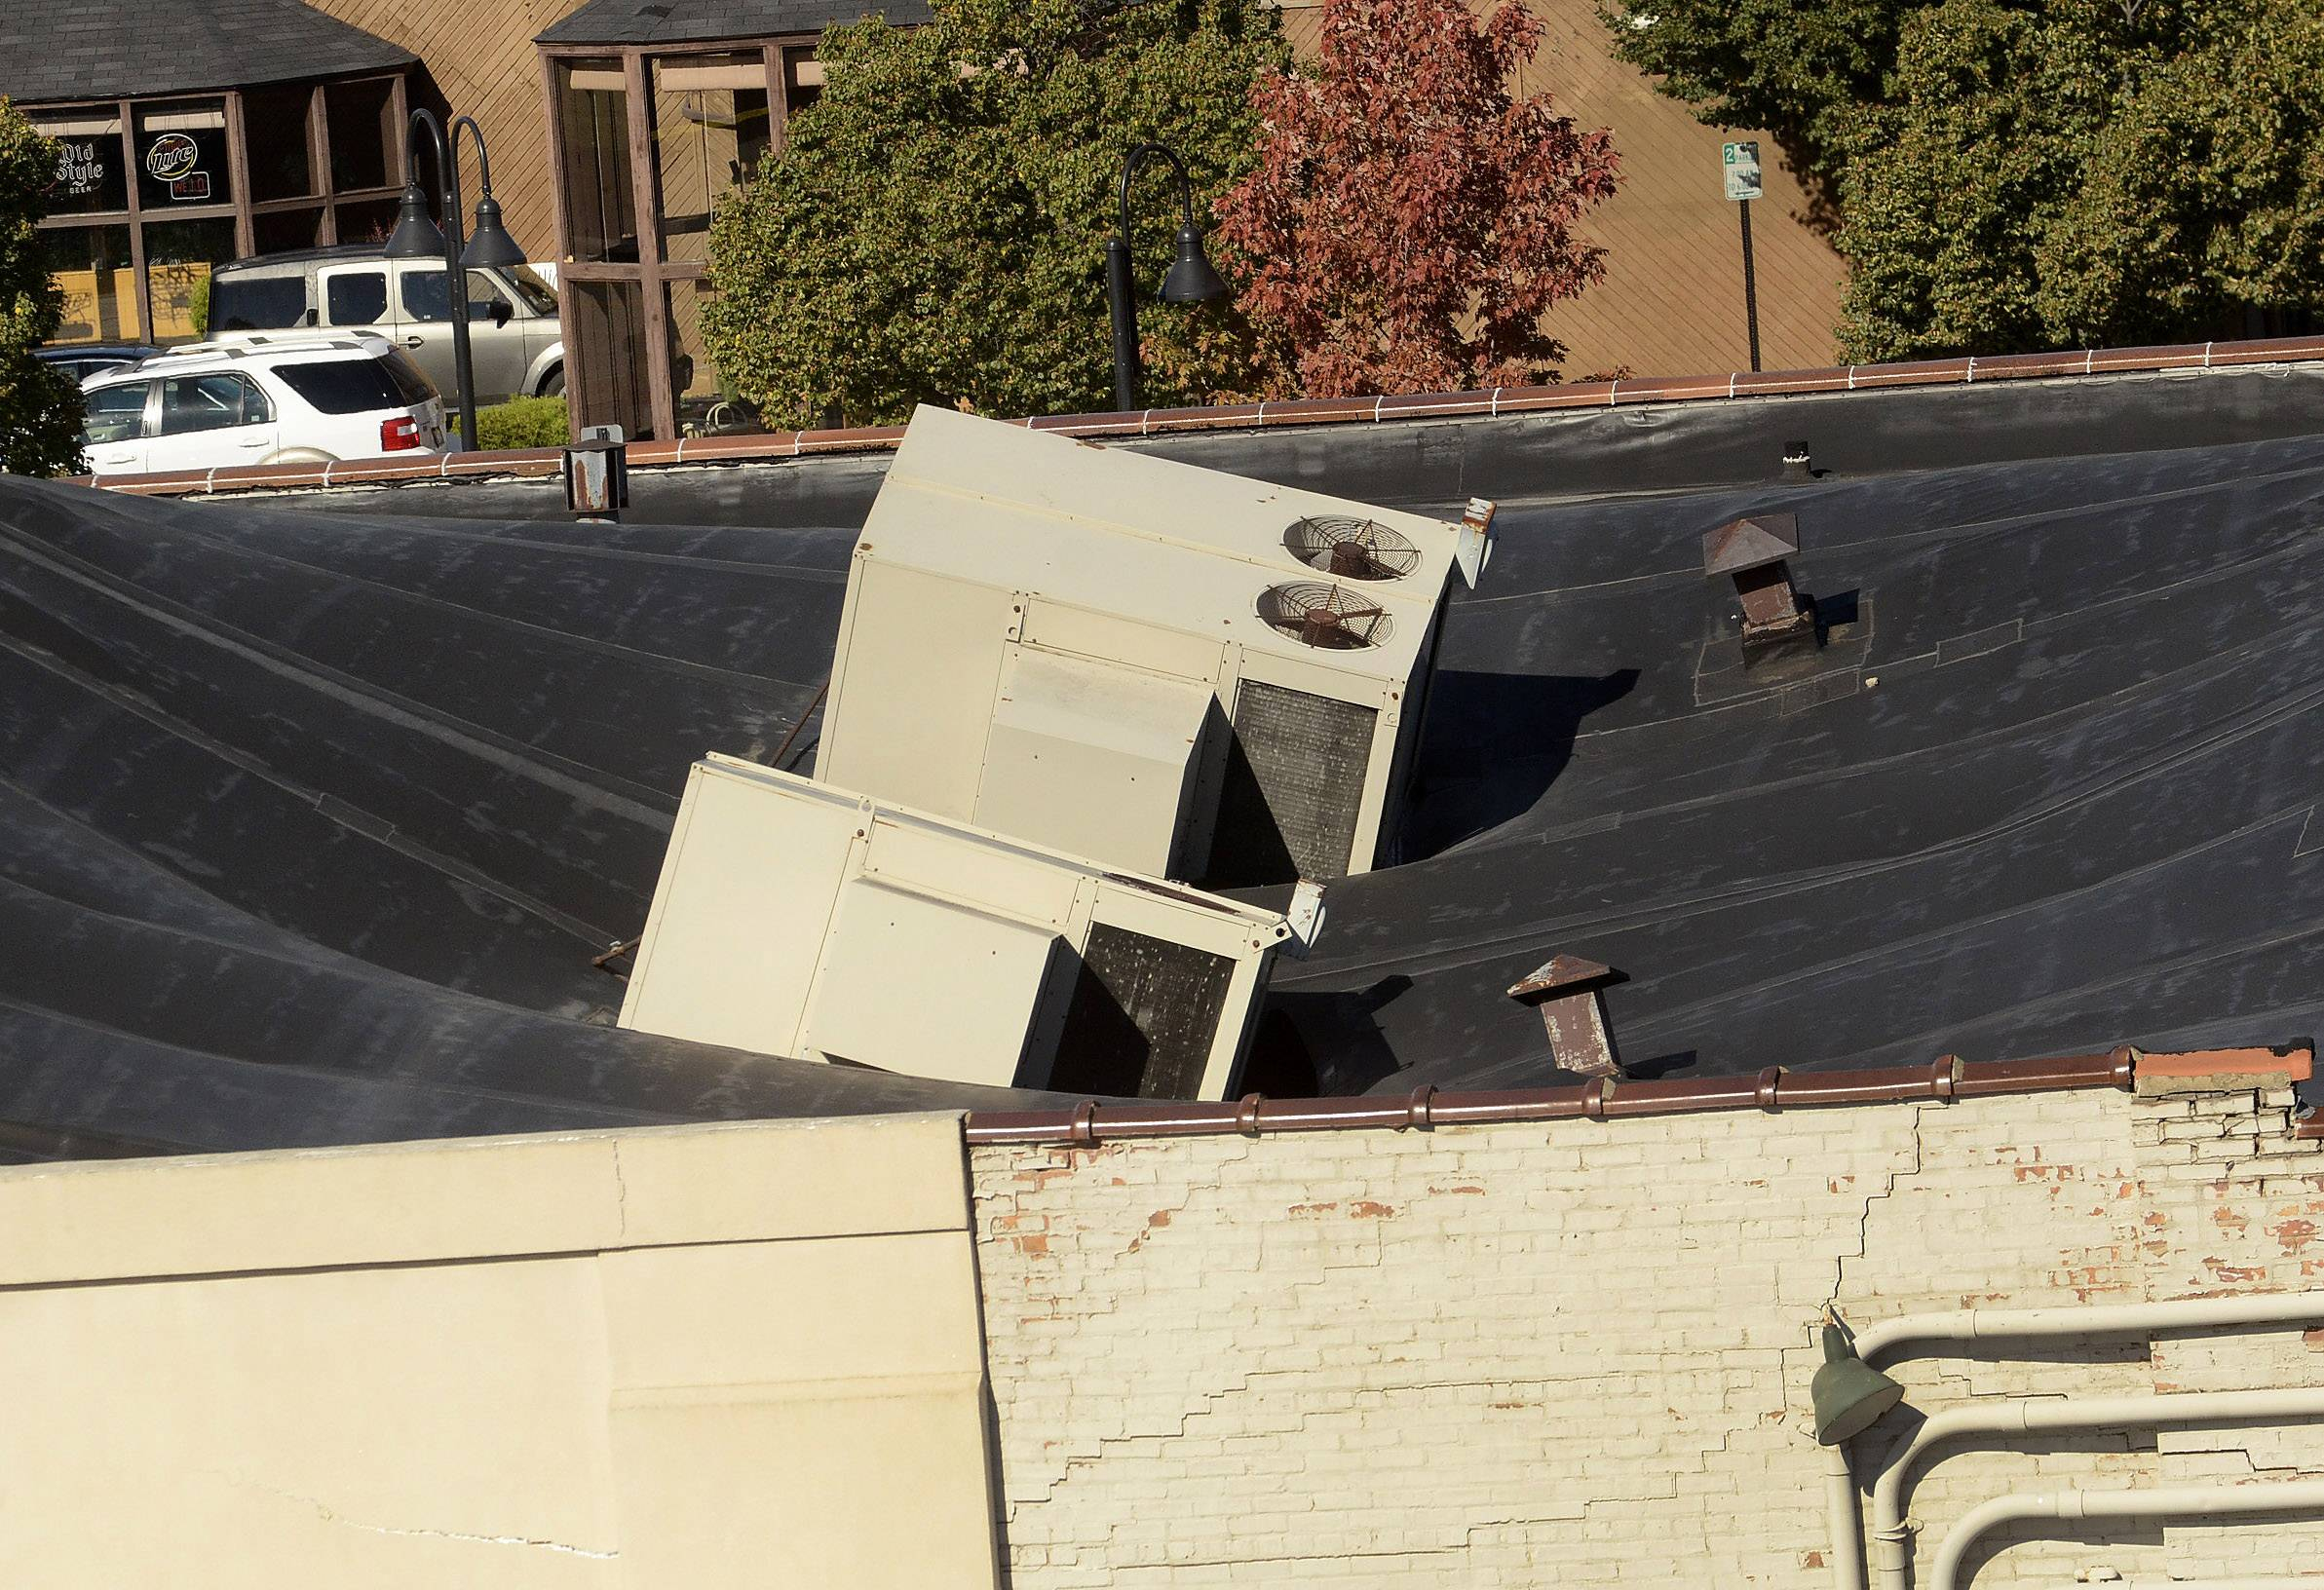 Two air-conditioning units sink into the roof of Tri-State Electronics in Mount Prospect.